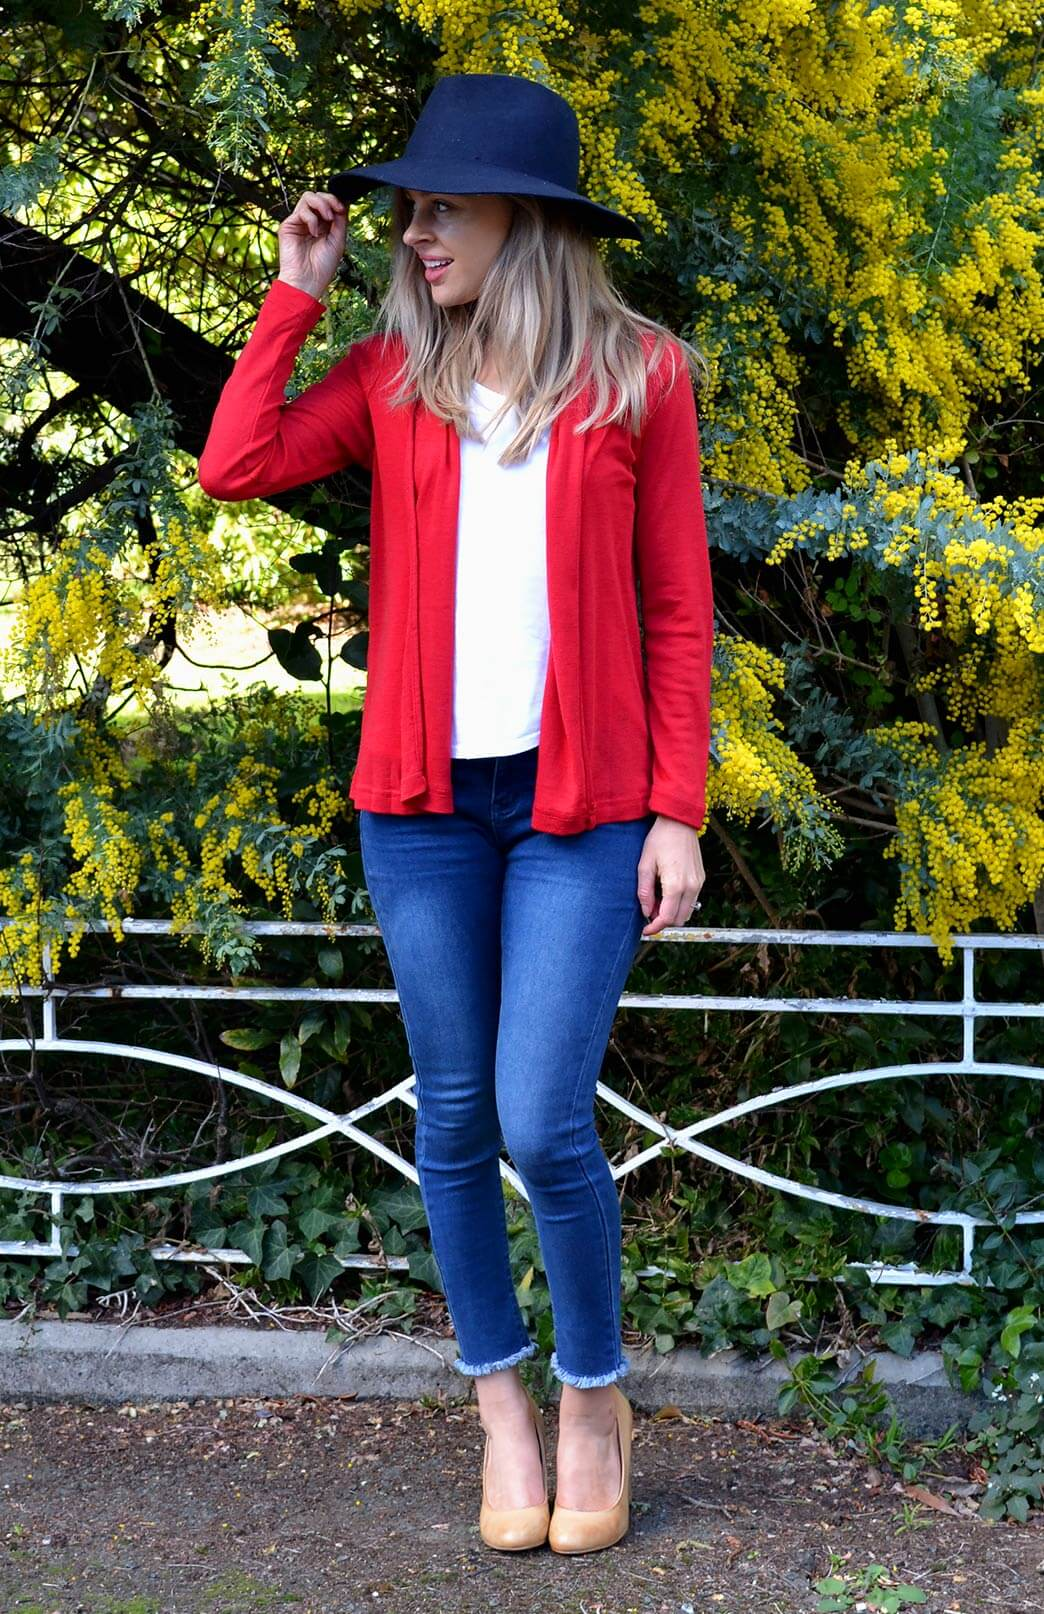 Our Model wearing Mini Drape Cardigan in Flame Red